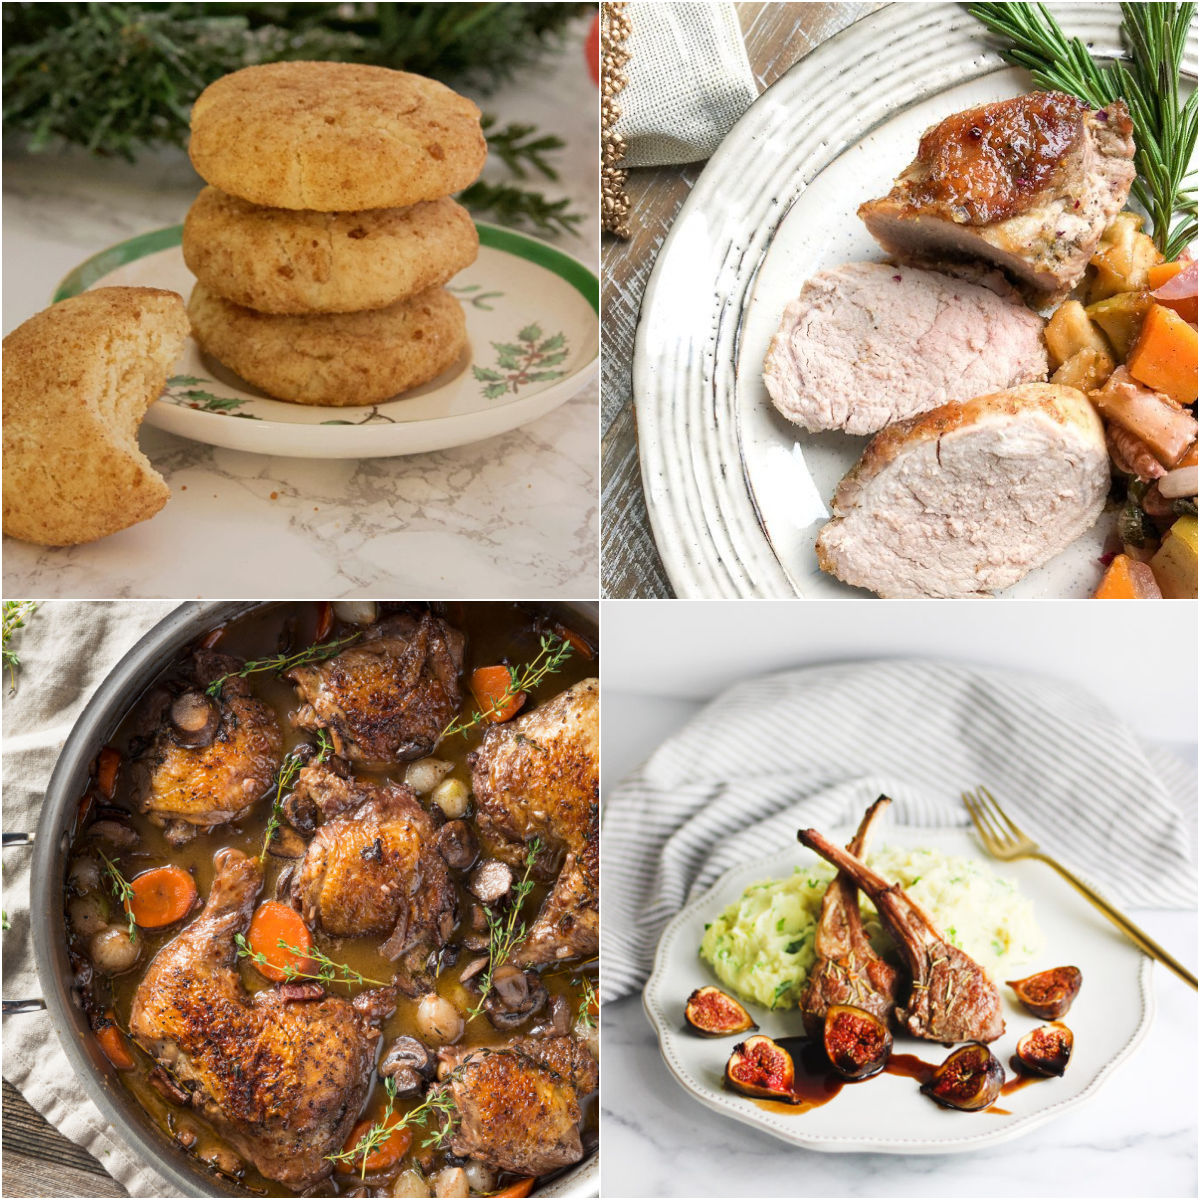 """Paleo AIP Recipe Roundtable #349   Phoenix Helix - *Featured Recipes: Snickerdoodle Cookies, Coq au Vin, Honey Apple Pork Tenderloin, and Lamb Chops and Roasted Figs with Balsamic Mint Sauce and Savory """"Mashed Potatoes"""""""